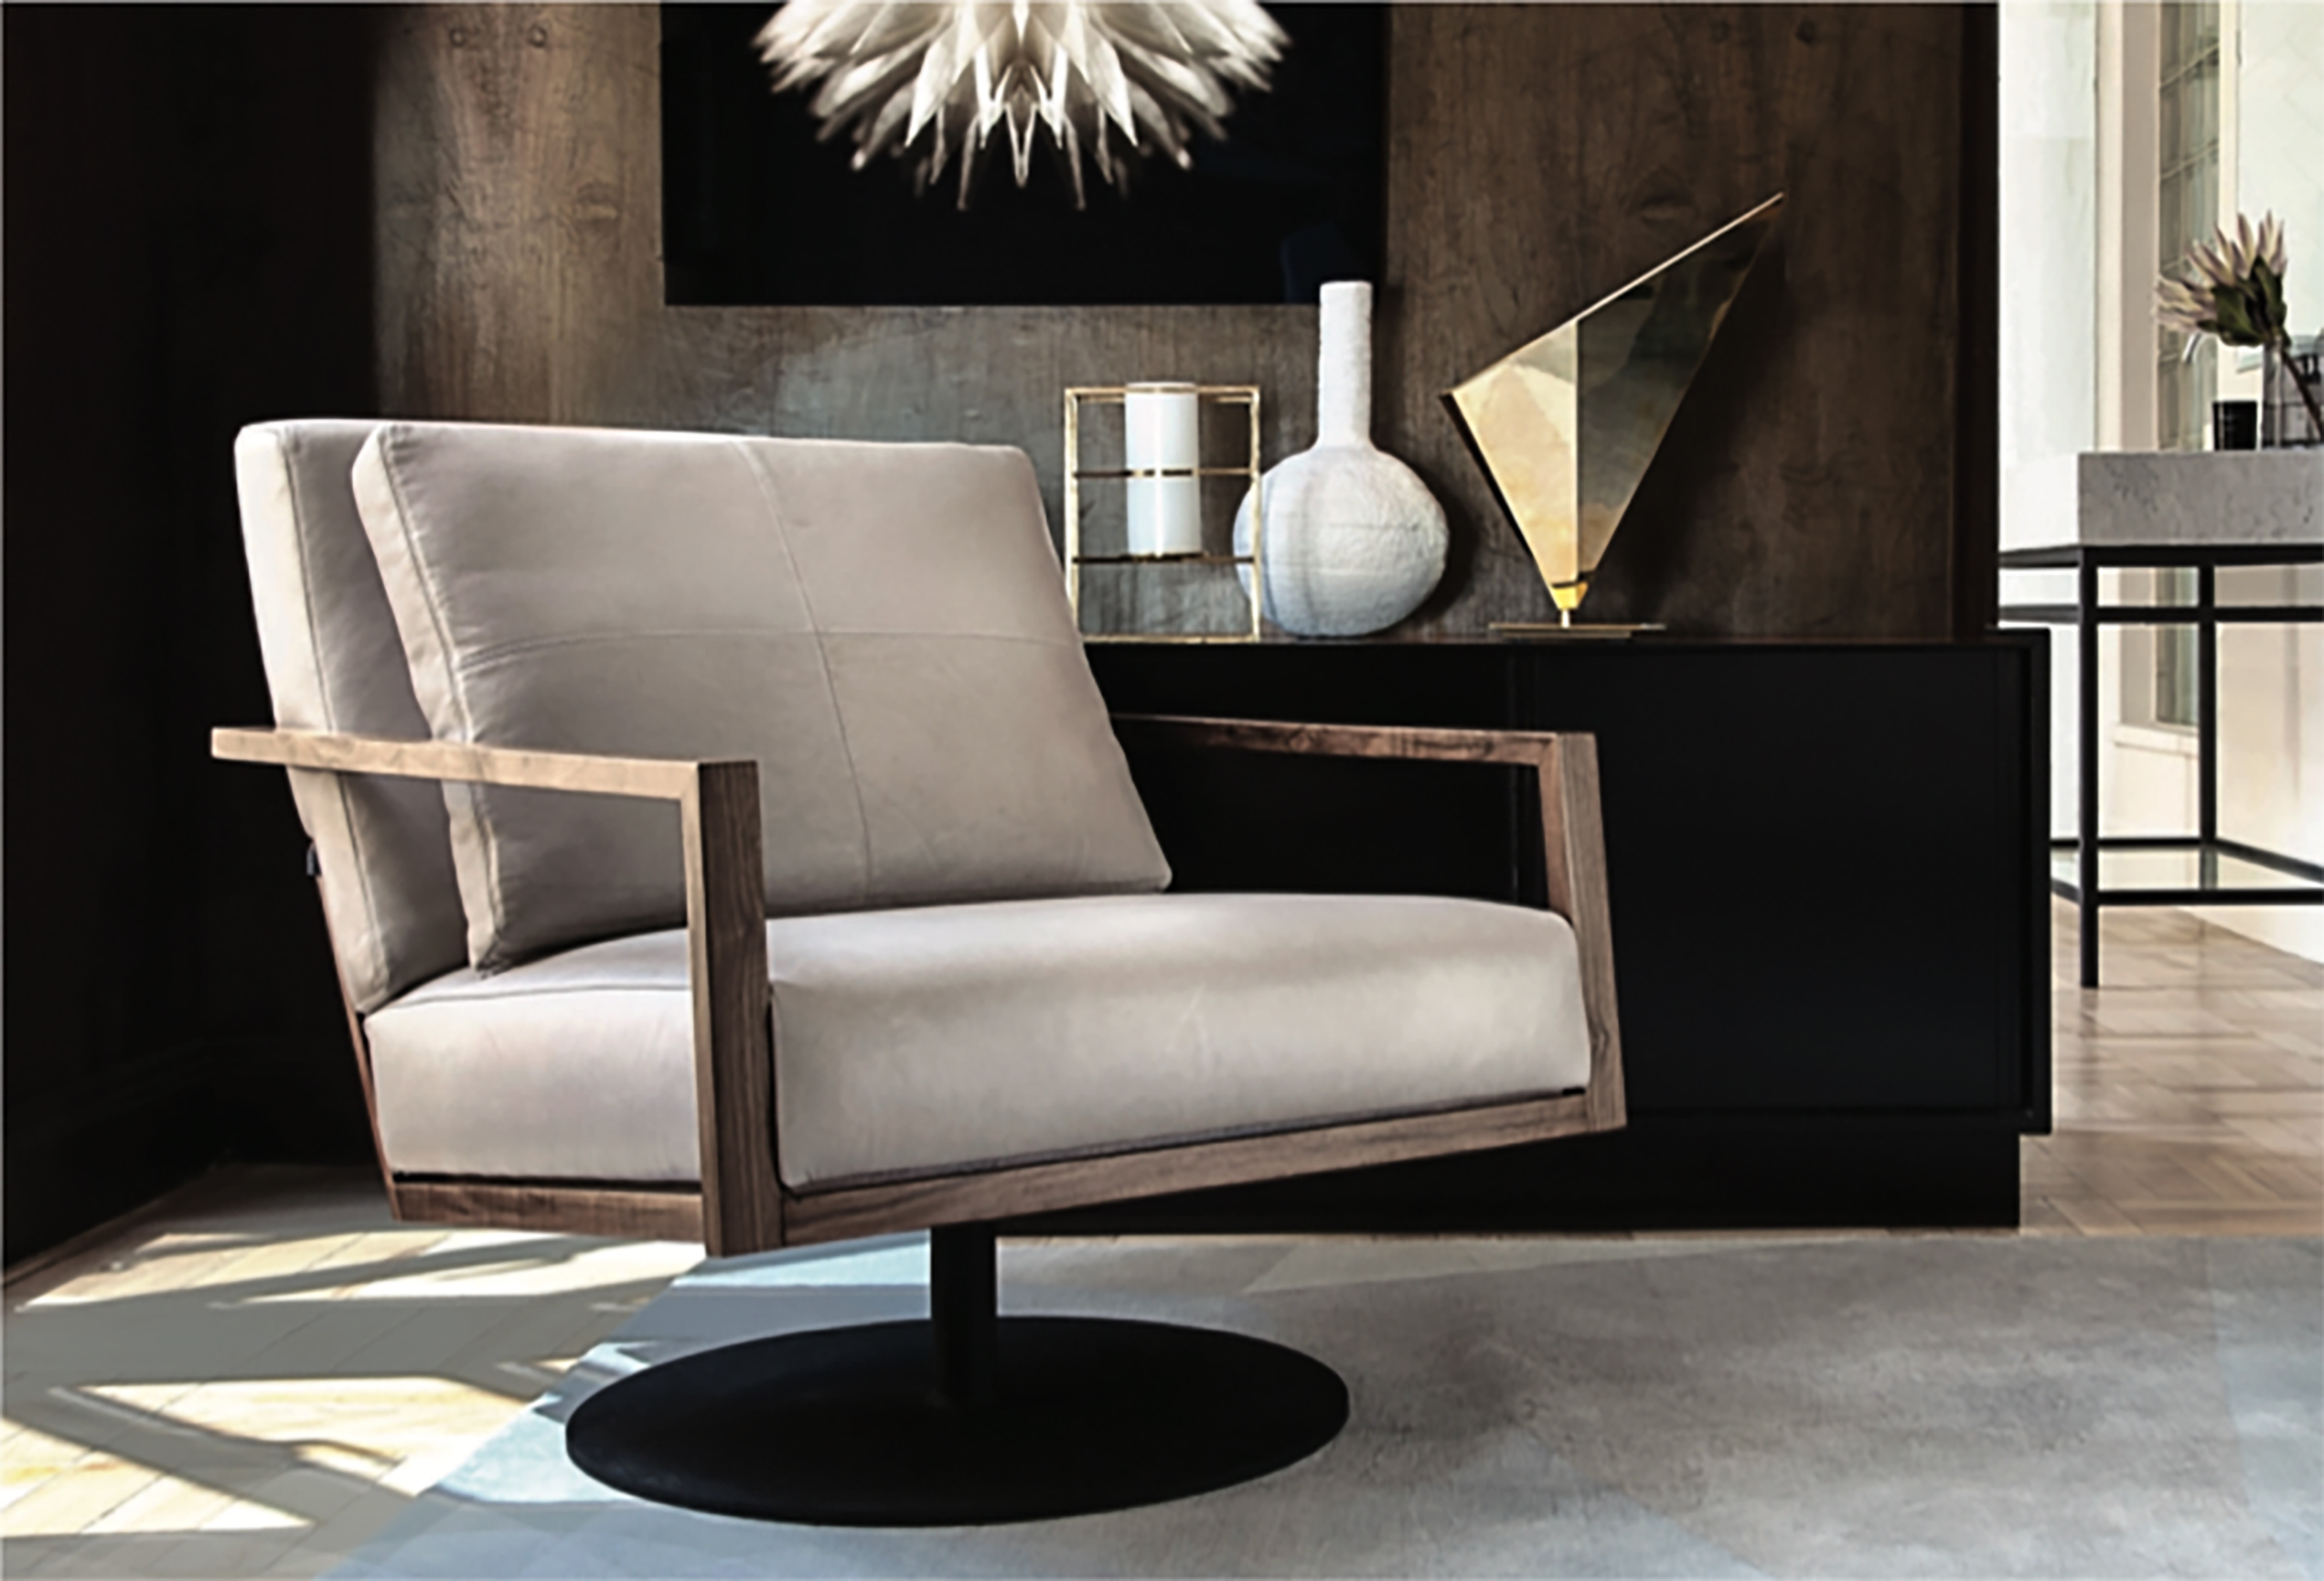 STM swivel armchair with walnut frame and leather upholstery © OKHA